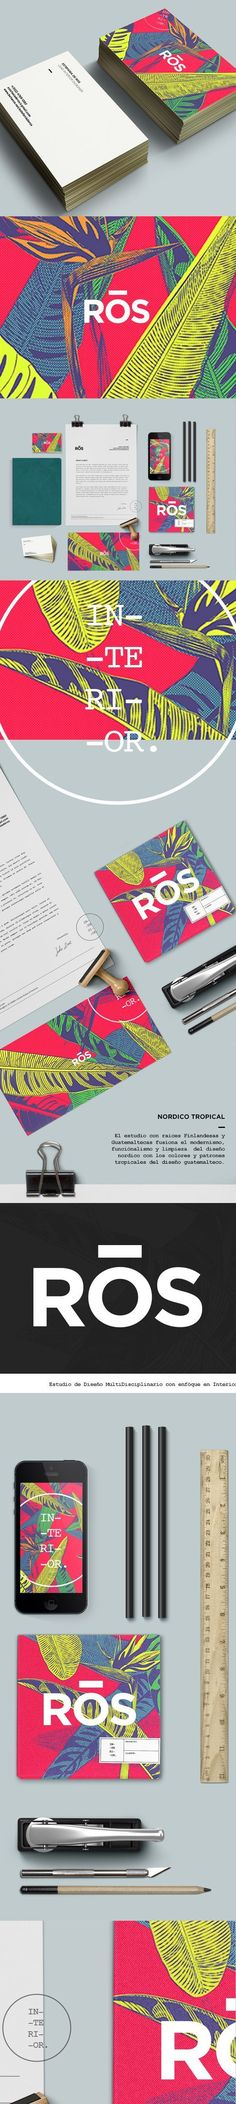 Identity / Ros / brand / brand board / mock up / color / pattern / plant texture